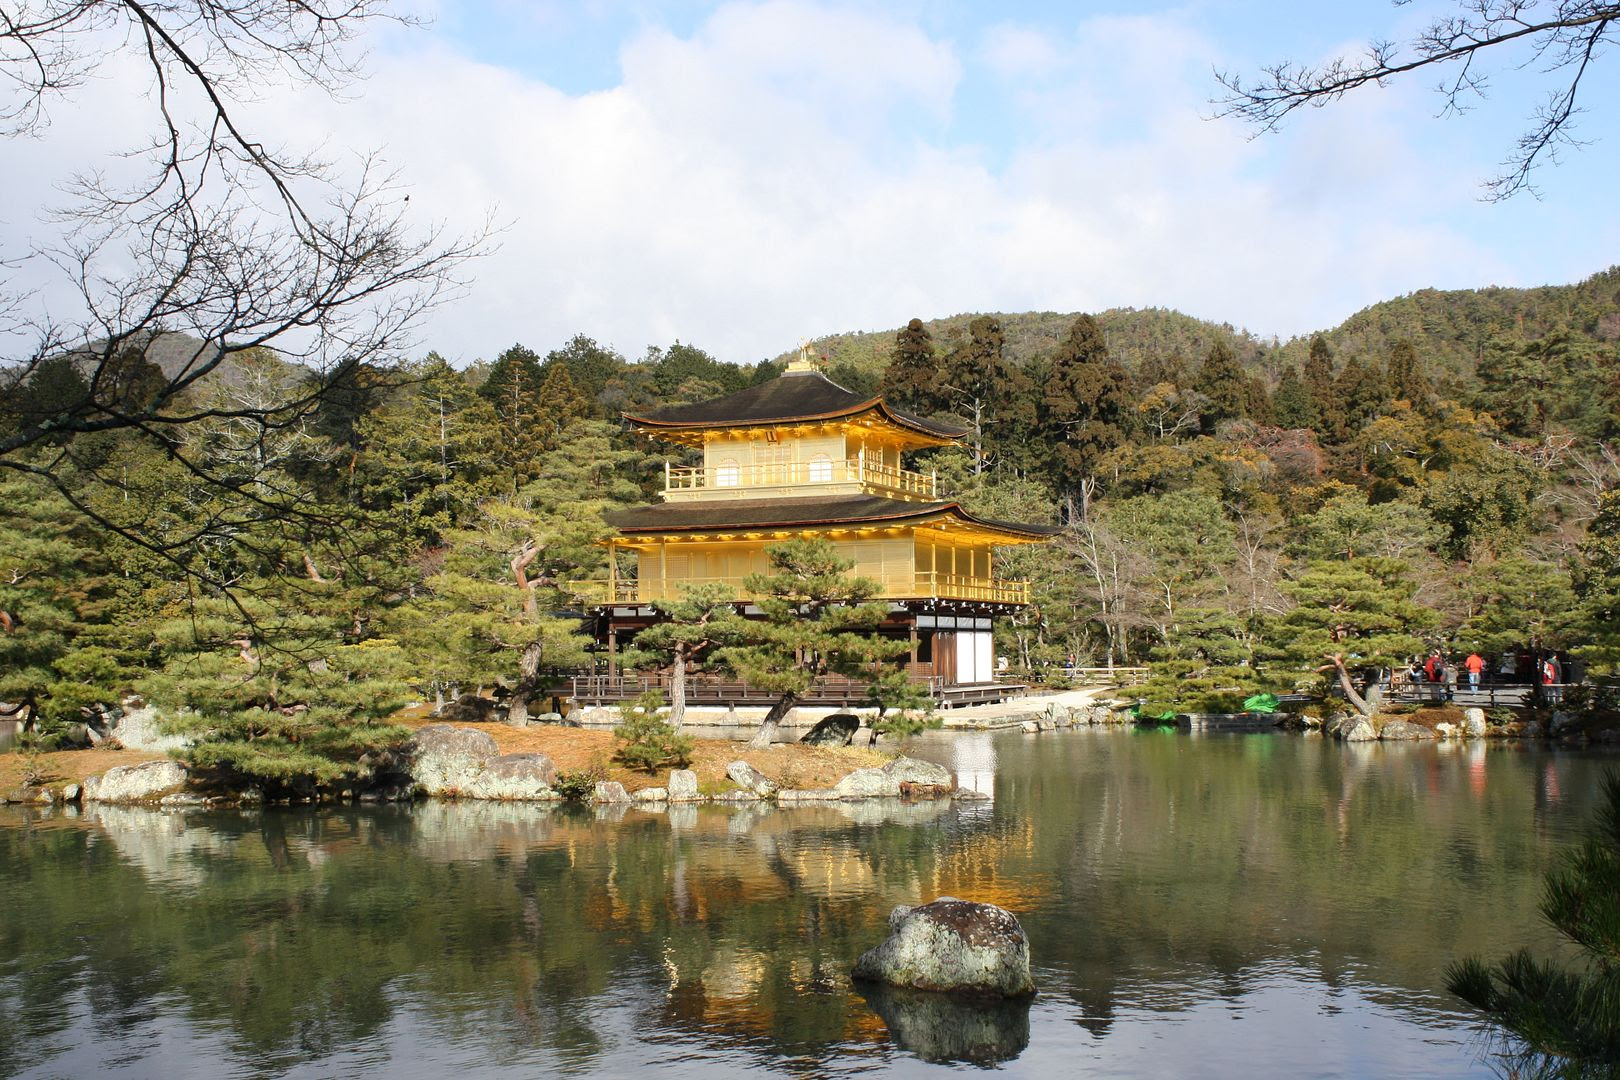 Golden Pavilion in Kyoto, Japan photo 2013-12-22175535_zpscd6da5eb.jpg